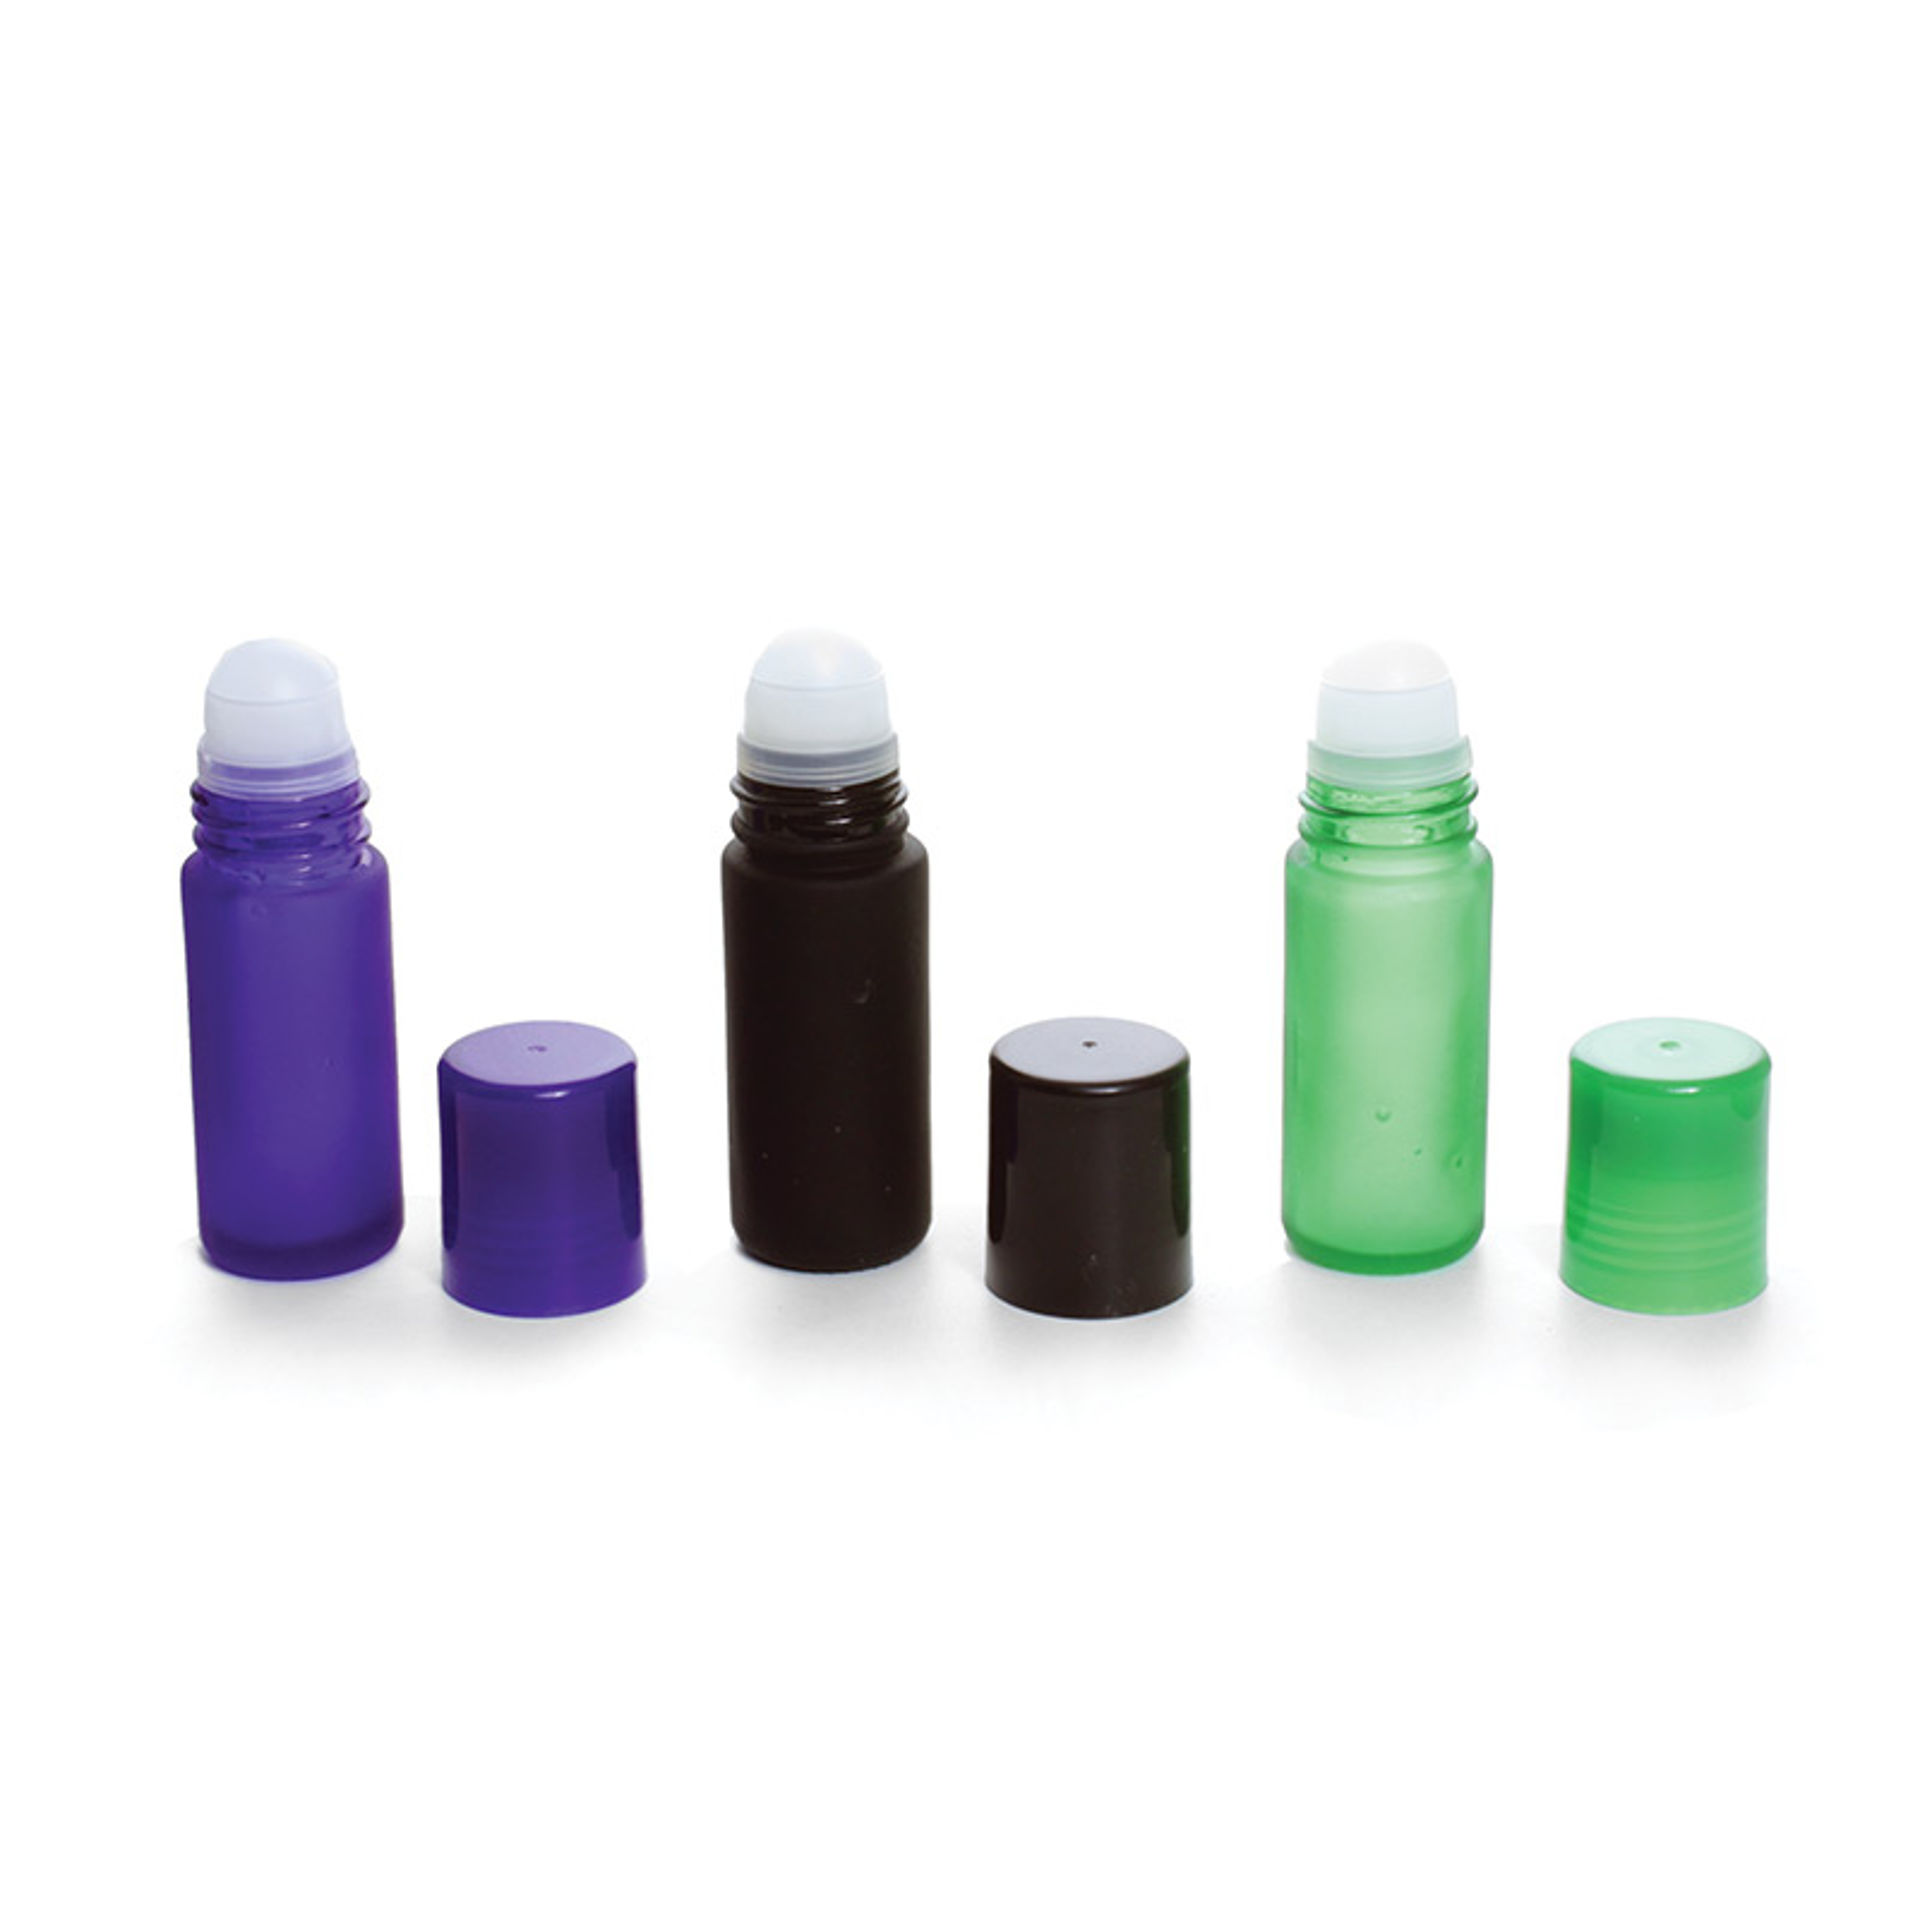 Picture of 12 Colored Glass 1 oz. Roll-On Bottles